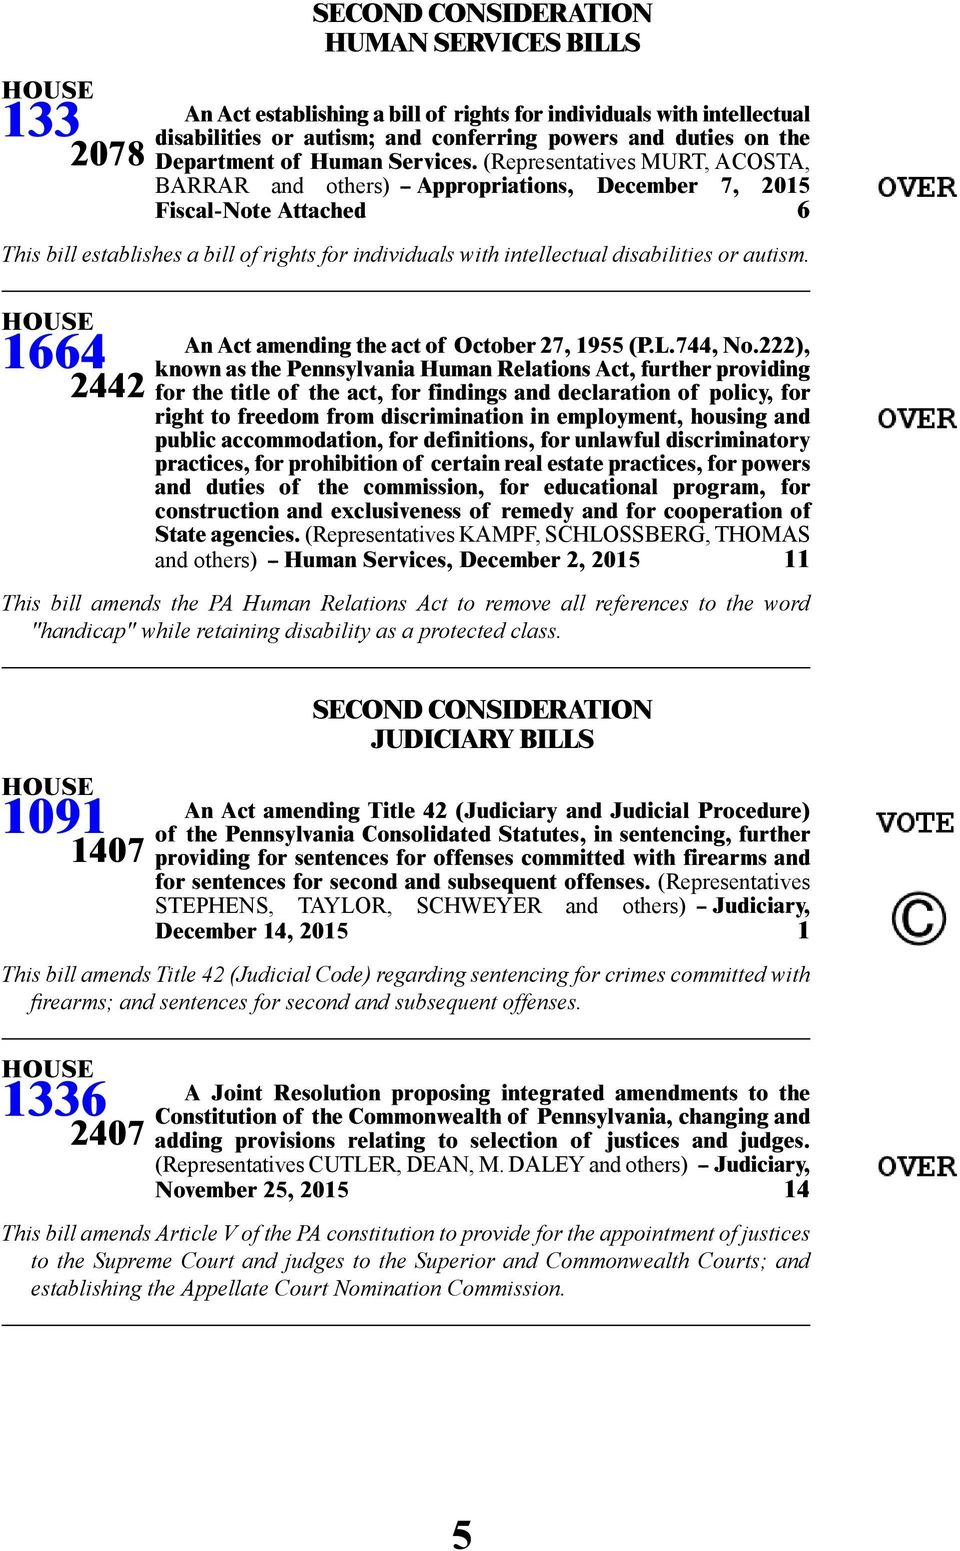 autism. 1664 2442 An Act amending the act of October 27, 1955 (P.L.744, No.